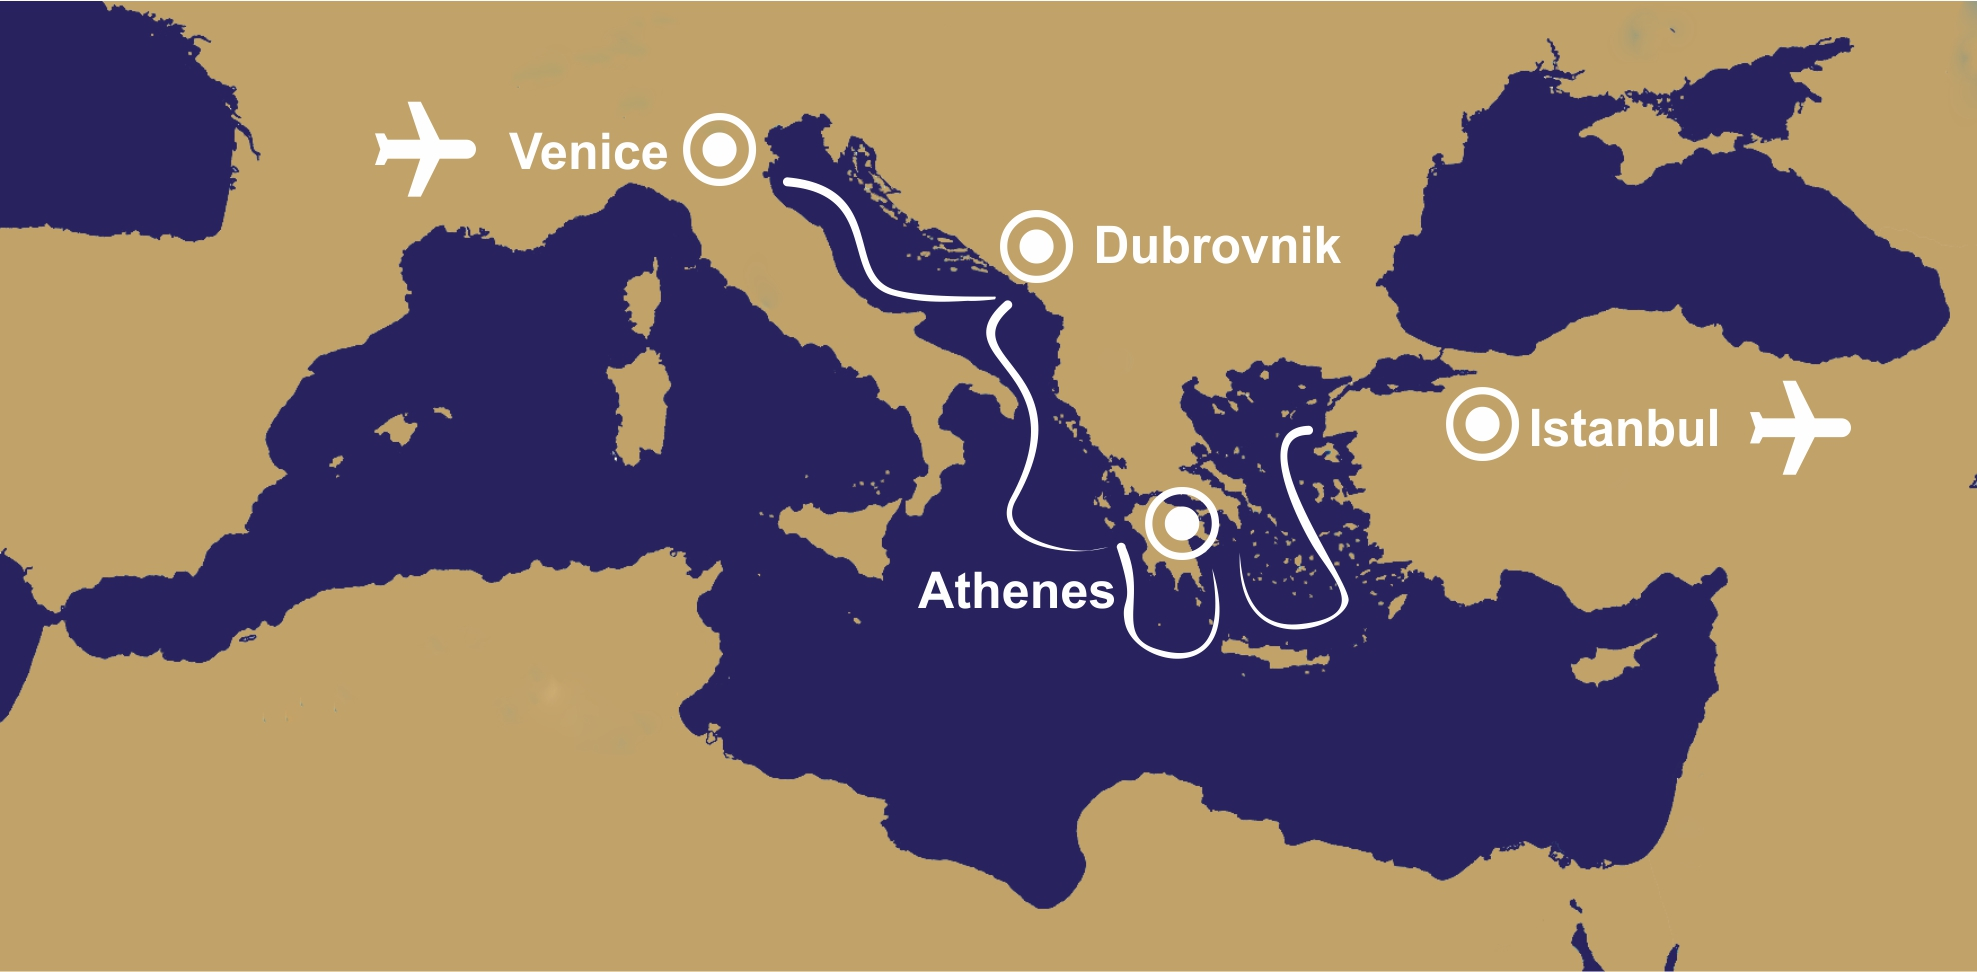 28 days private all inclusive sailing routes DIVA, Dubrovnik, Istanbul, Venice, Athens